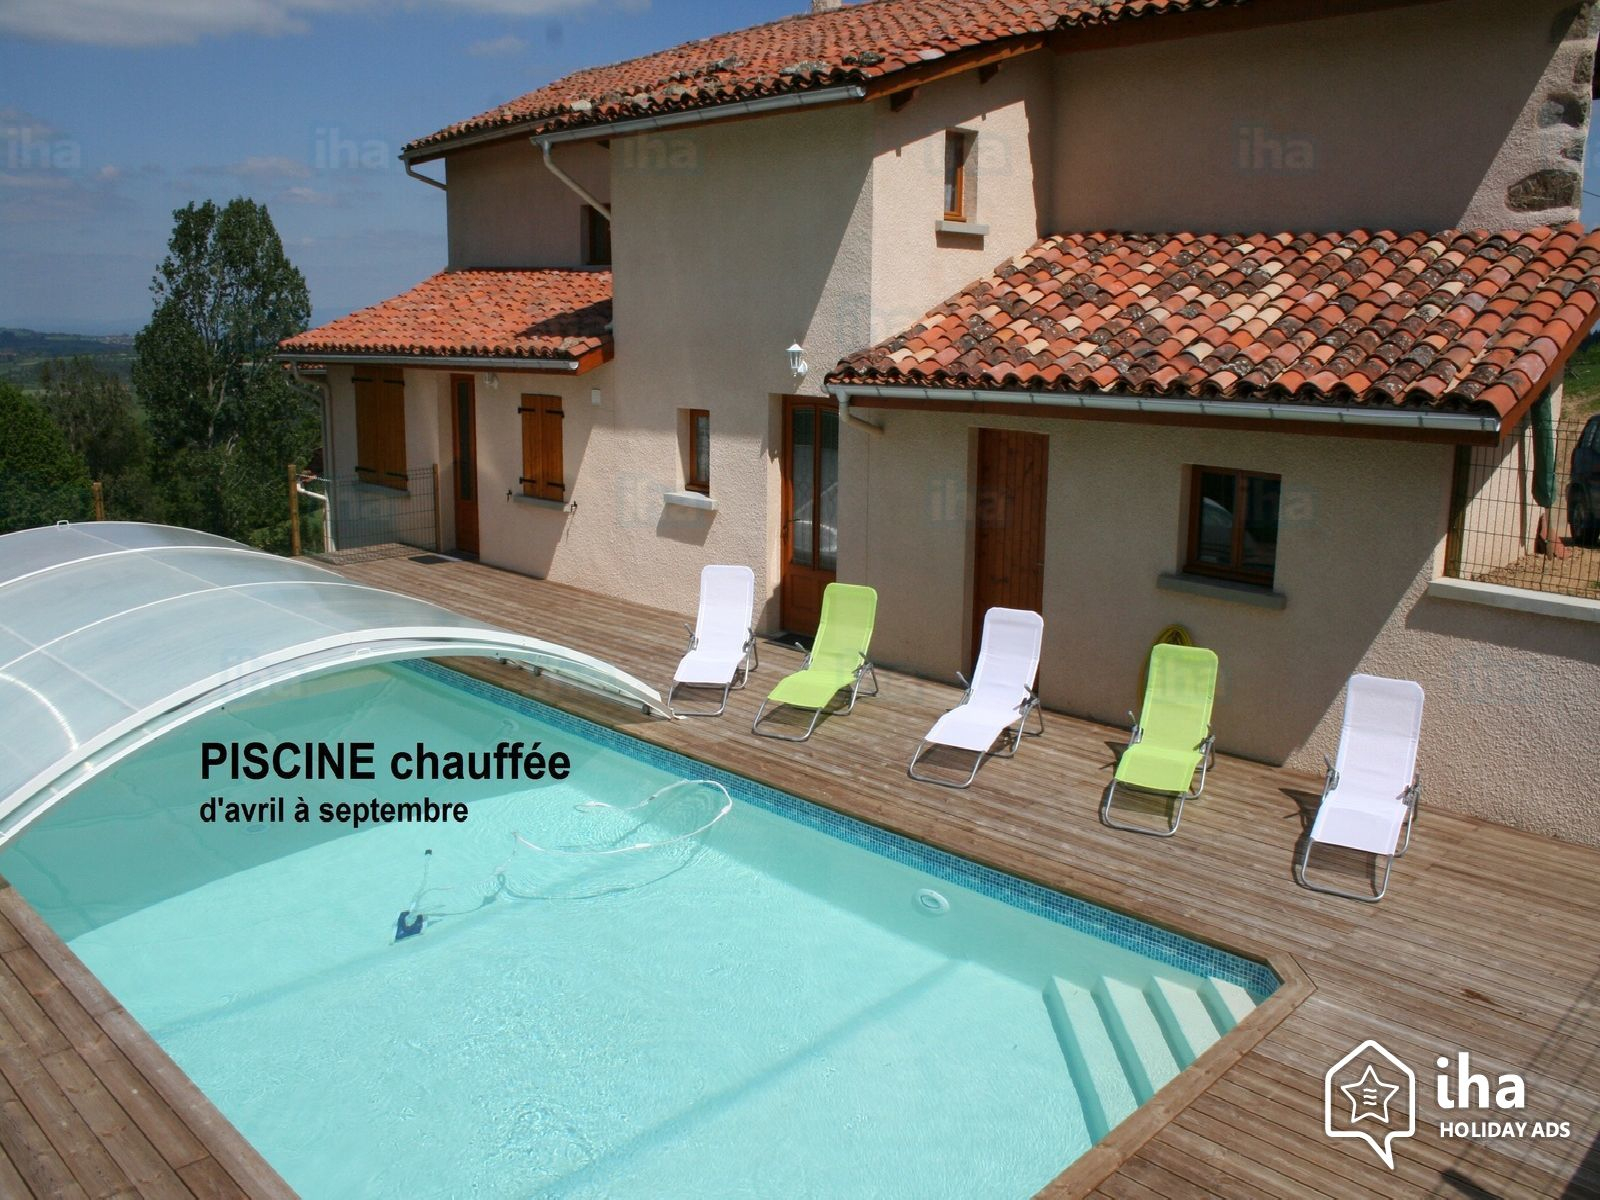 6 Bedrooms Gîte - Self Catering For Rent From 1 To 12 People destiné Self Piscine